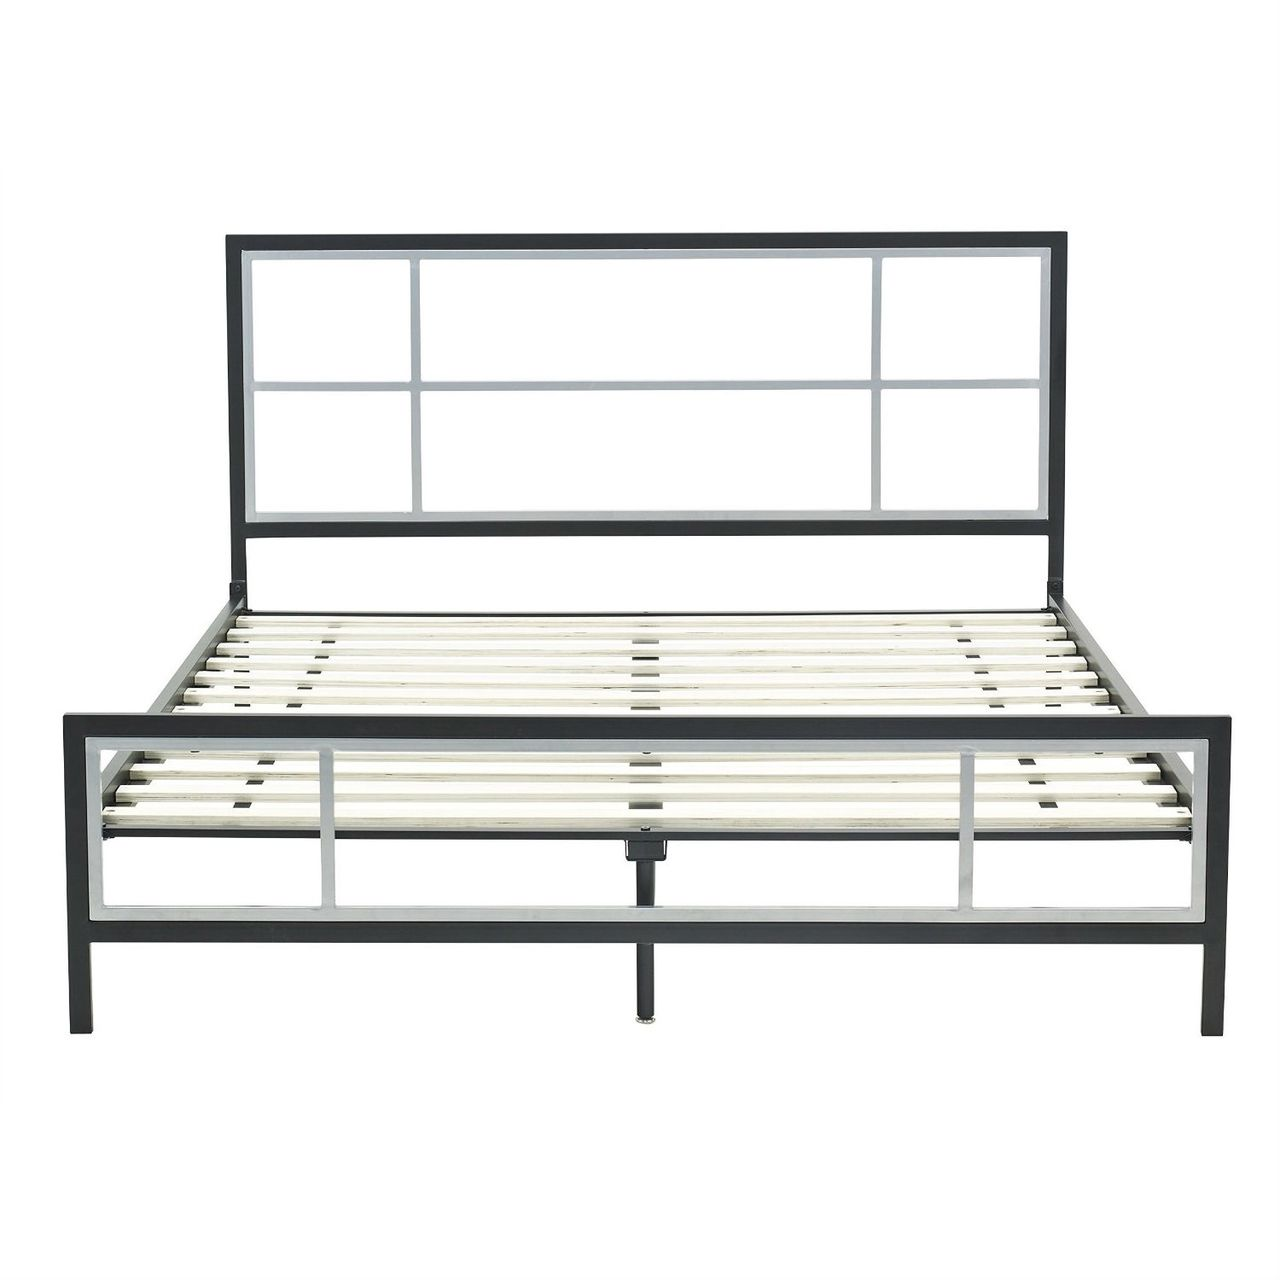 Queen size modern platform metal bed frame with headboard footboard wooden slats quality house